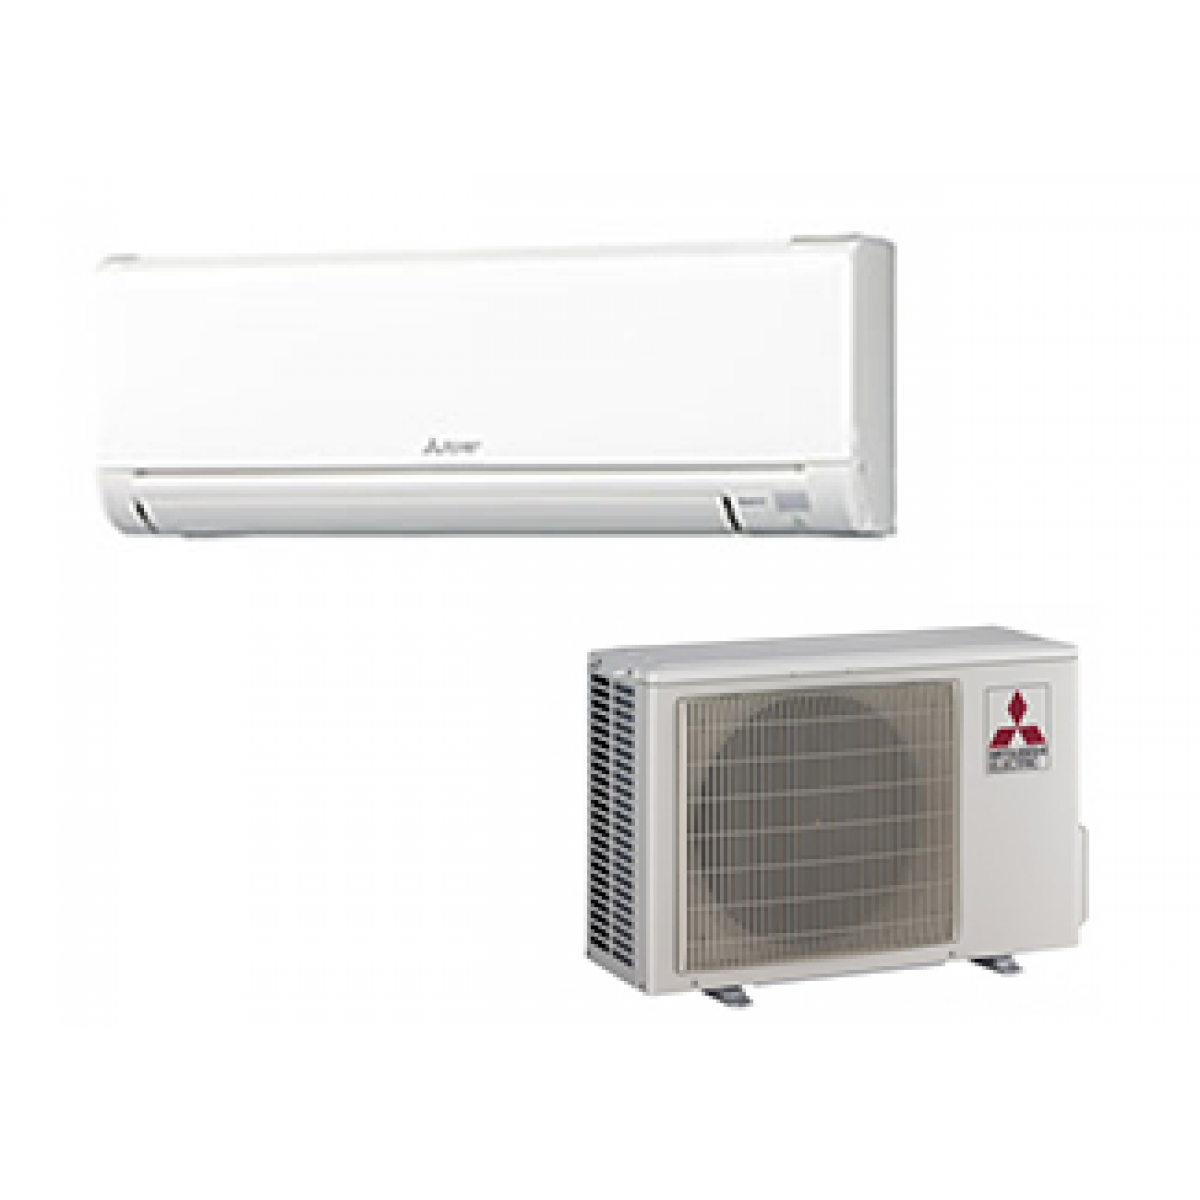 Mitsubishi 12k btu 23 5 seer cooling only system in Ductless ac